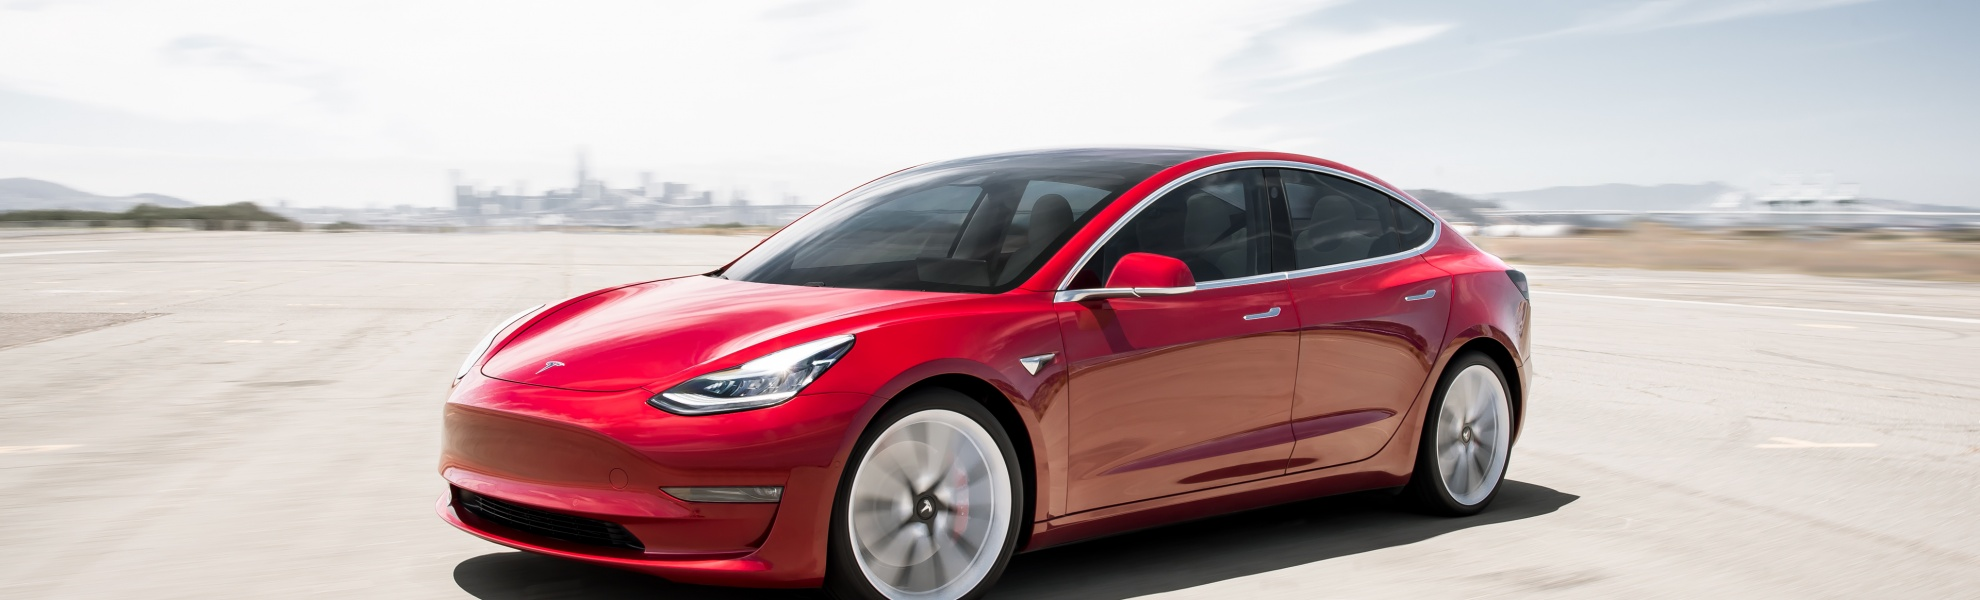 Model 3 Performance - Red Turn.jpg